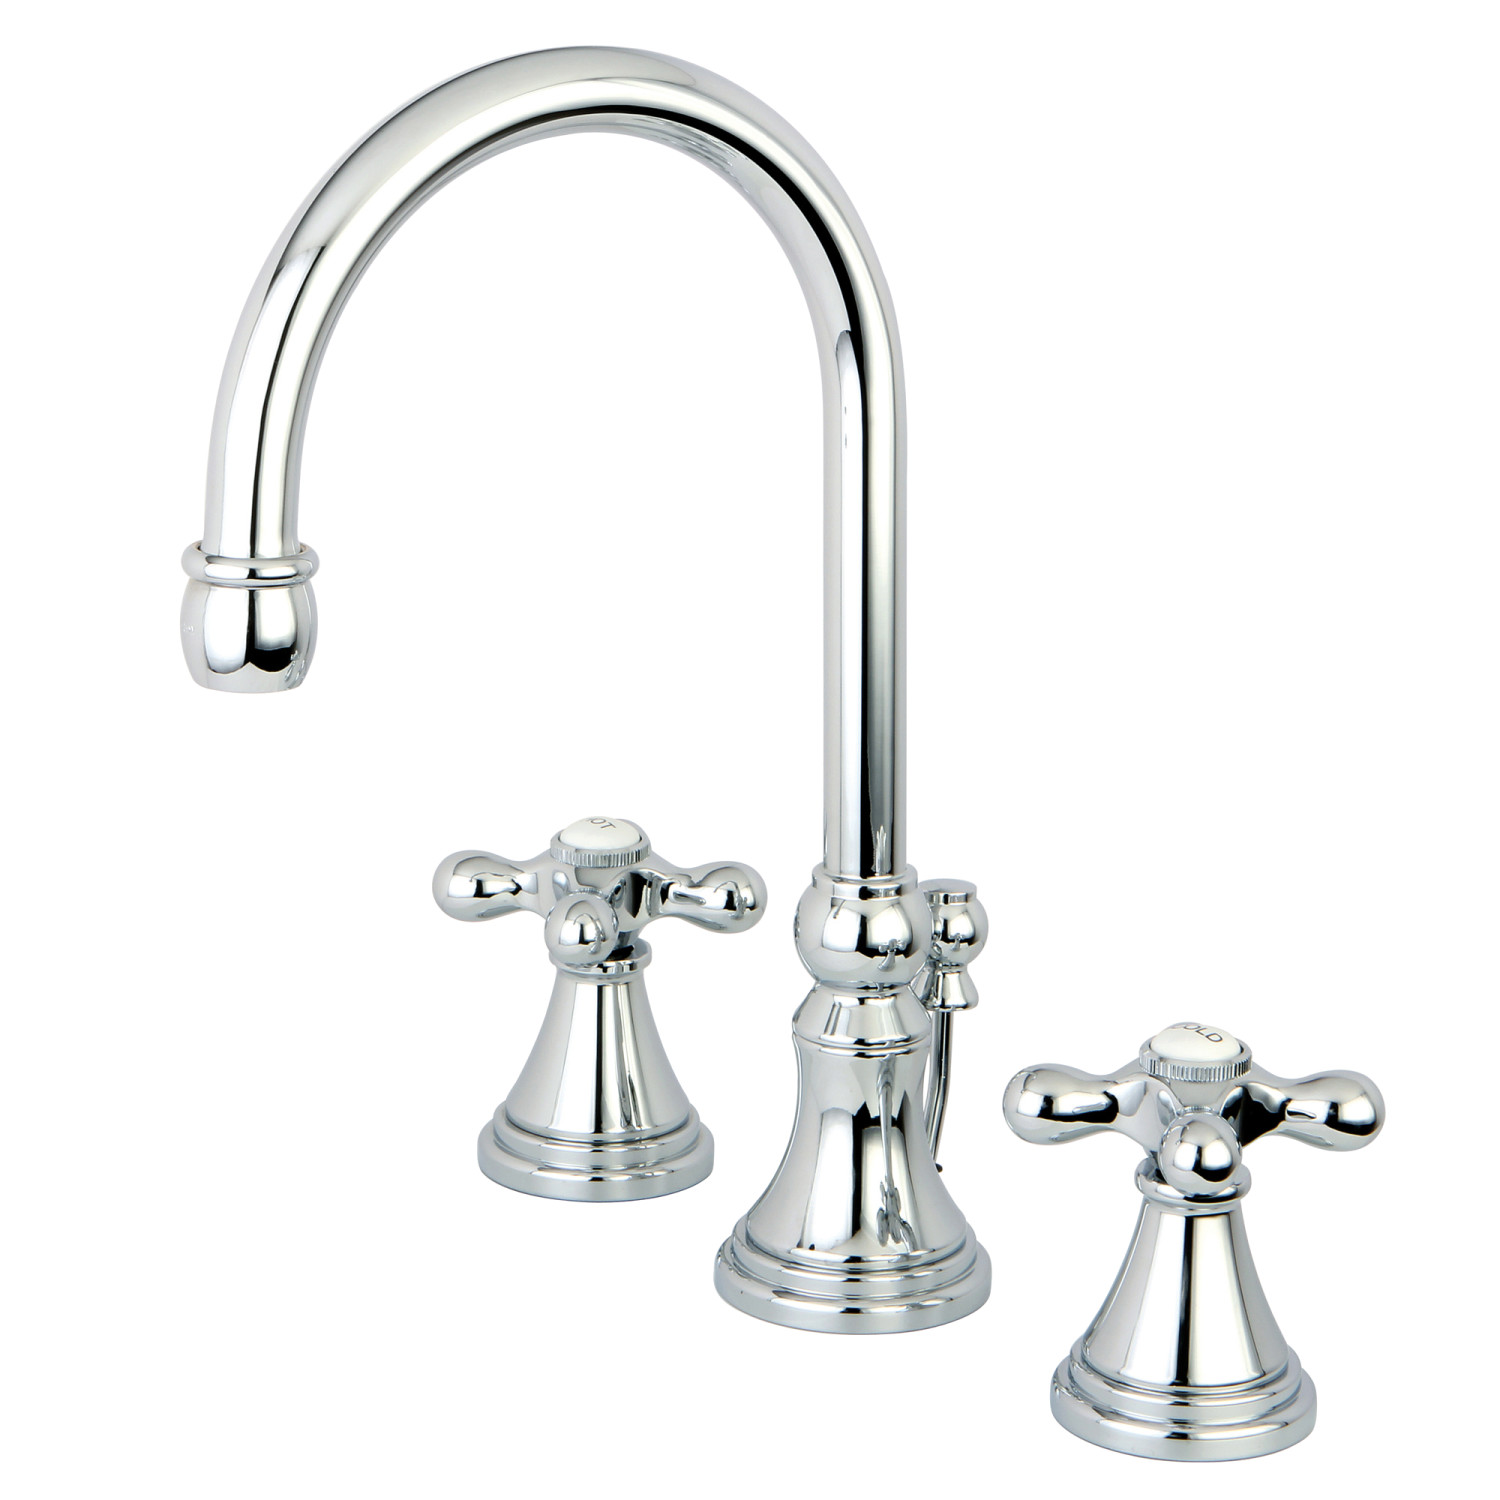 Two-Handle 3-Hole Traditional Deck Mounted Widespread Bathroom Faucet with Brass Pop-Up in Polished Chrome